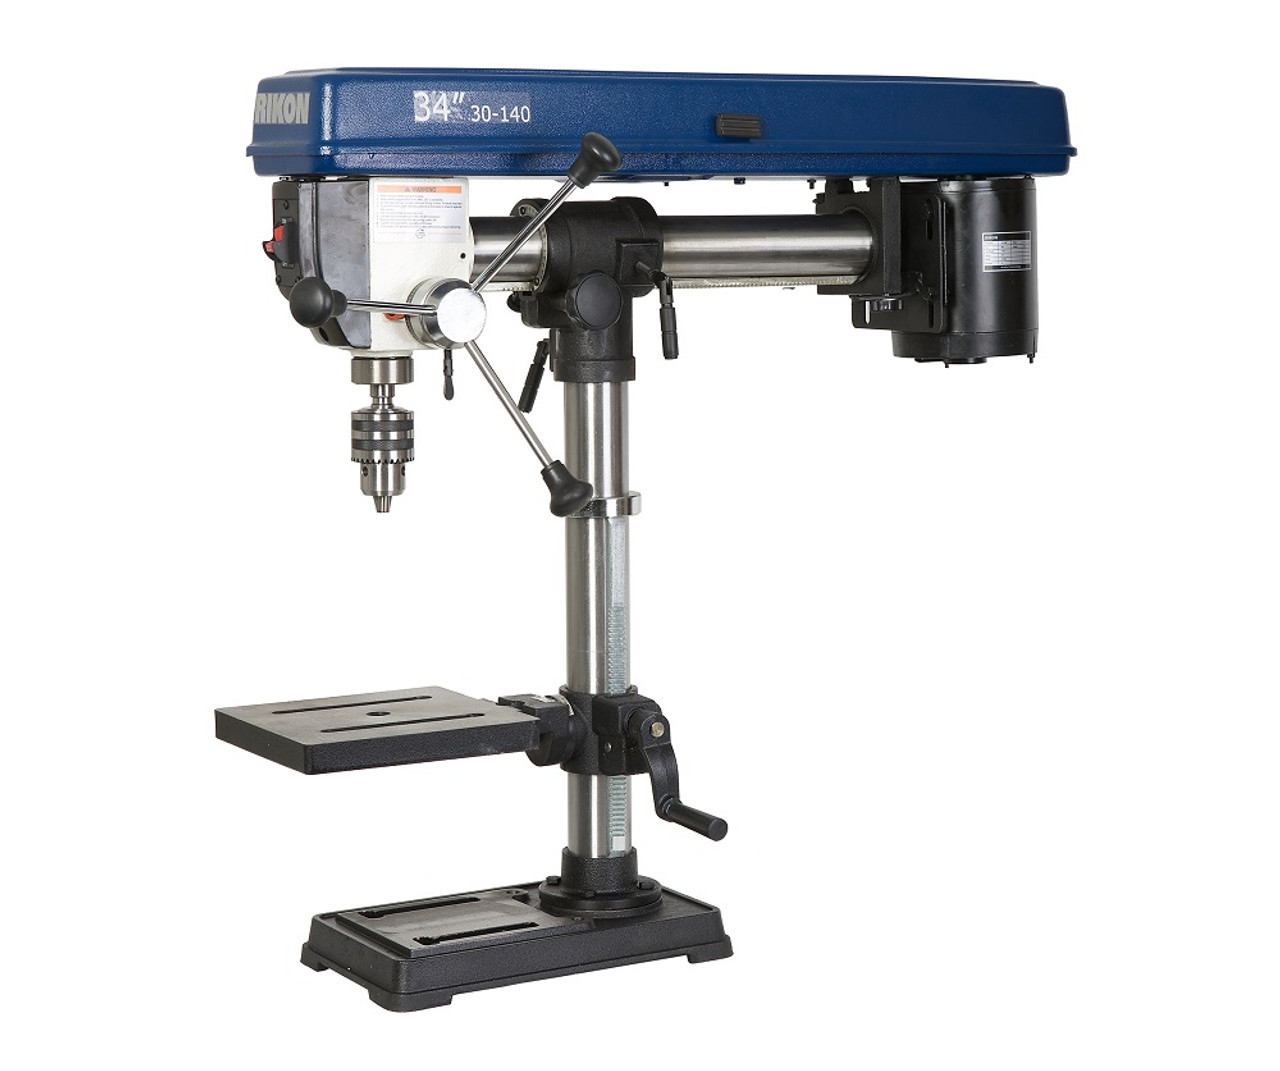 Phenomenal Rikon 30 140 34 Benchtop Radial Drill Press Caraccident5 Cool Chair Designs And Ideas Caraccident5Info